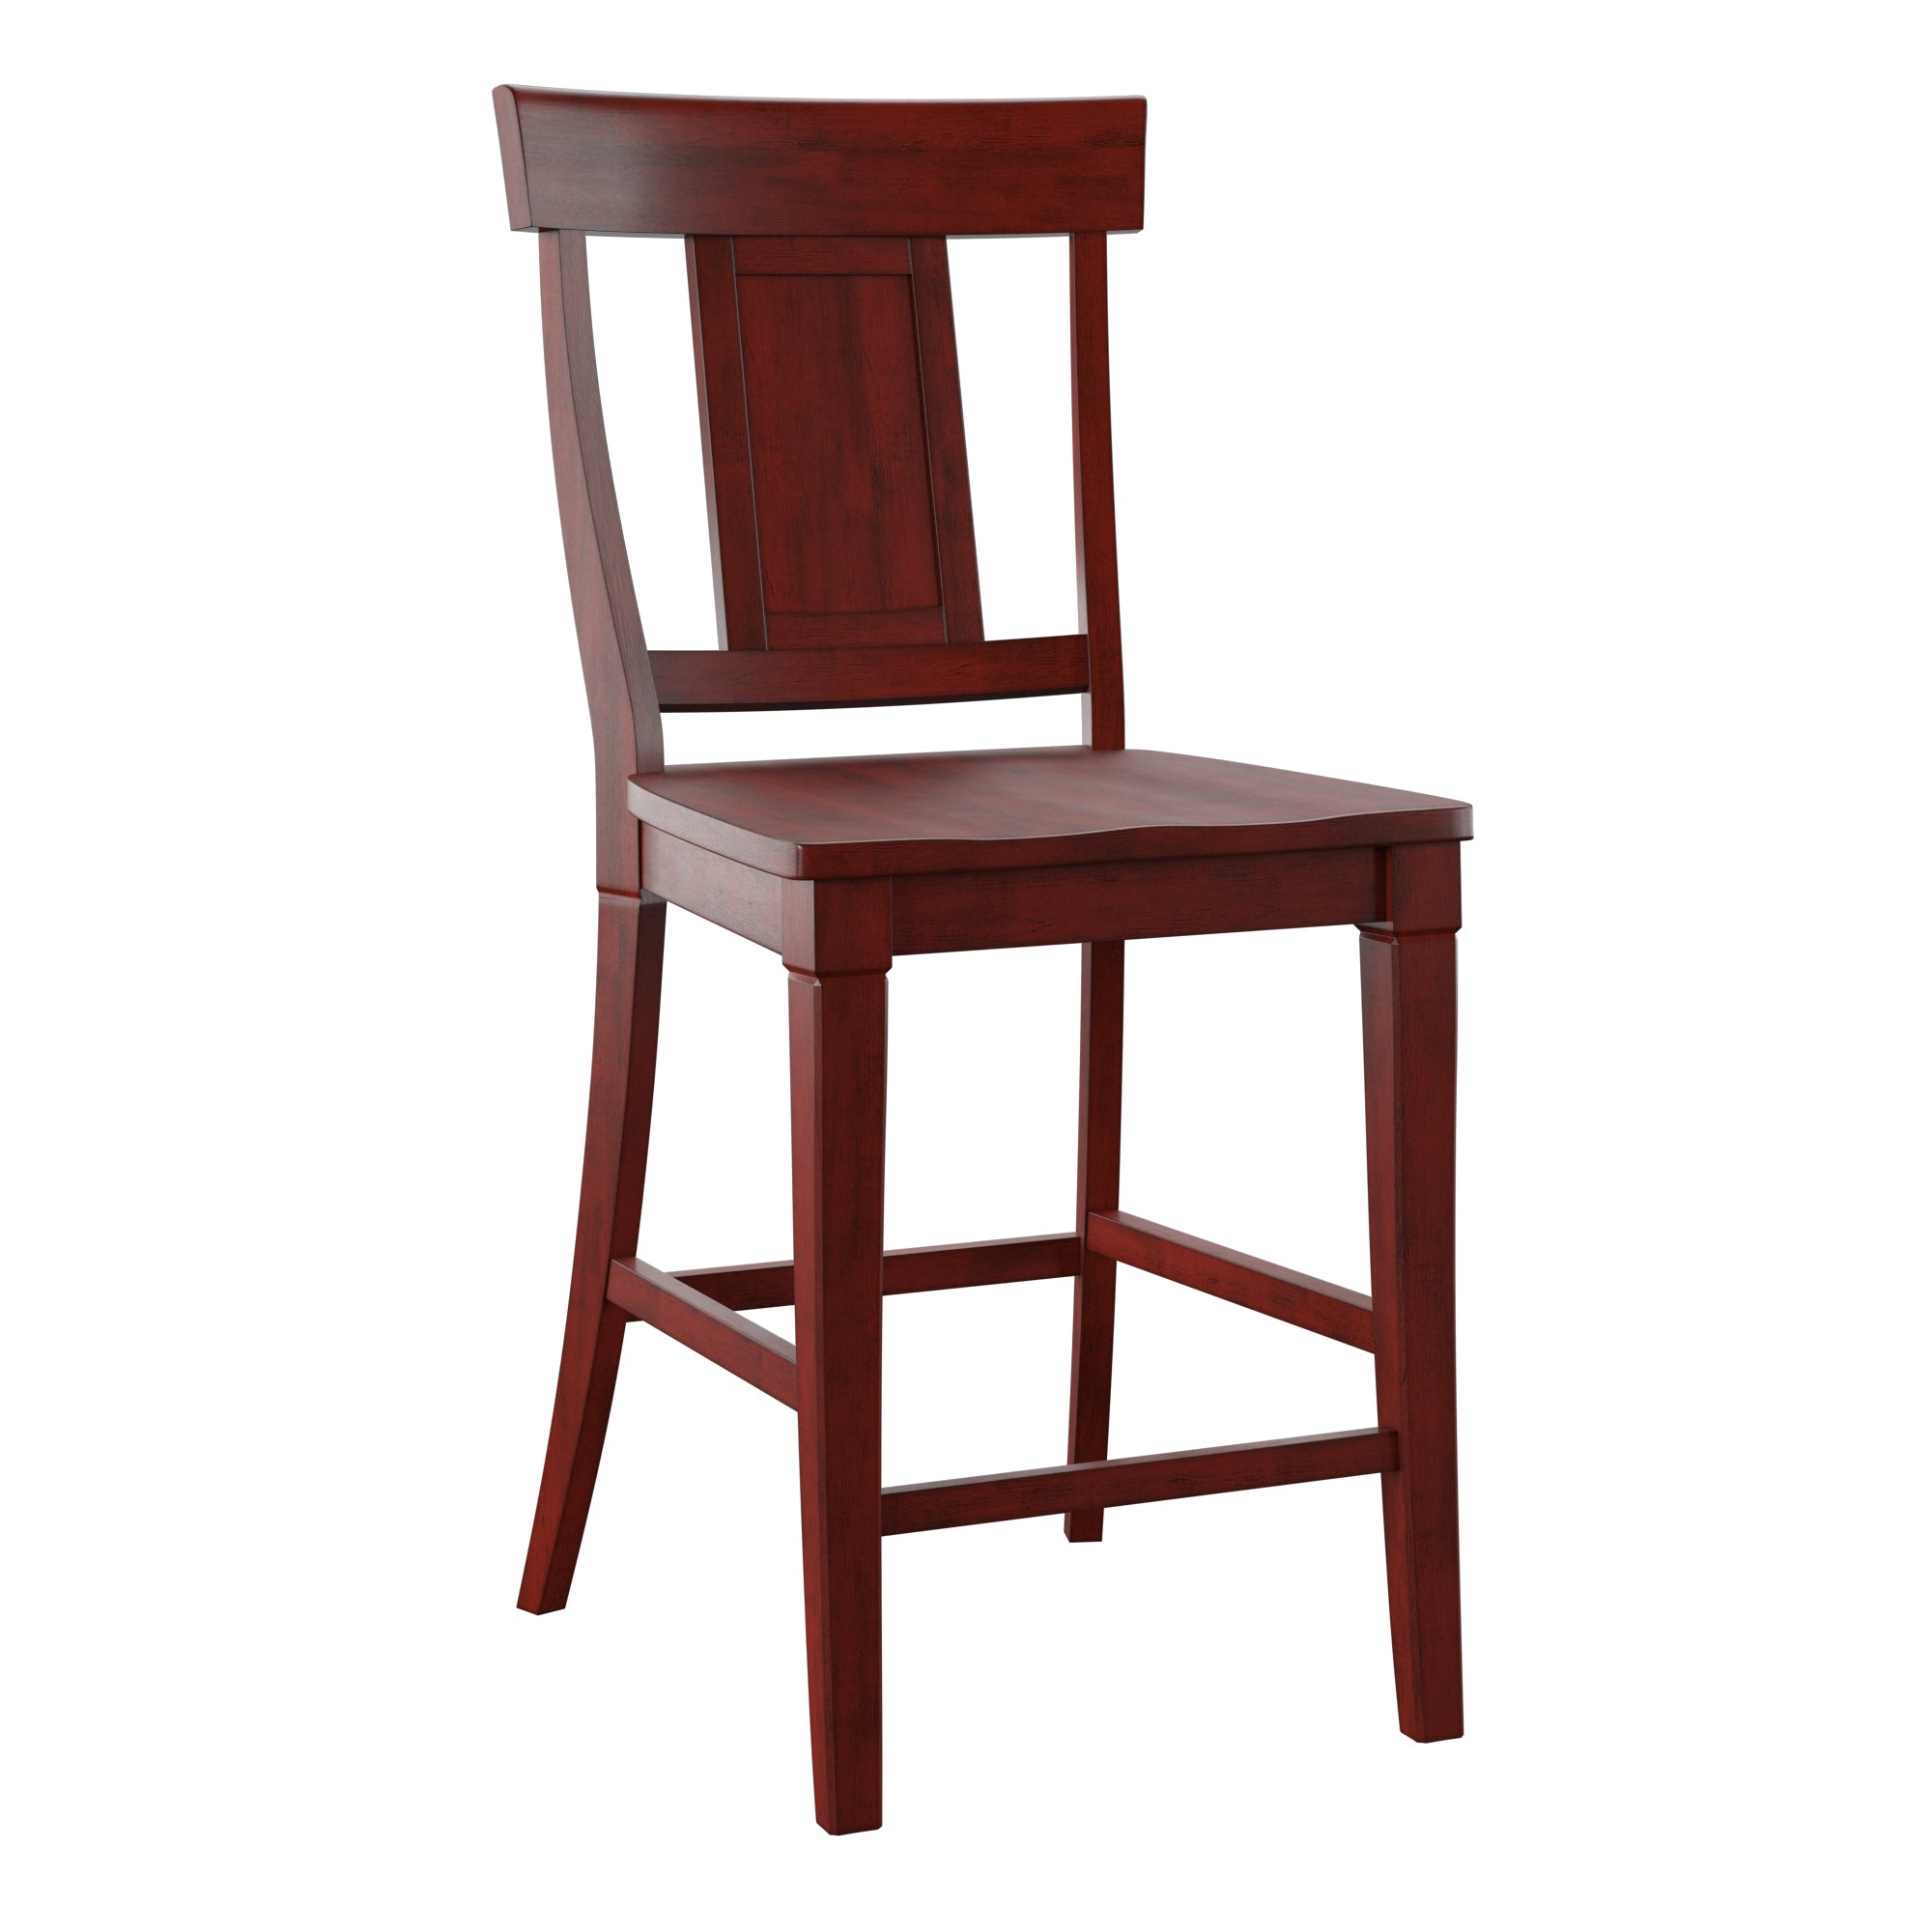 Panel Back Wood Counter Height Chair (Set of 2) - Antique Berry